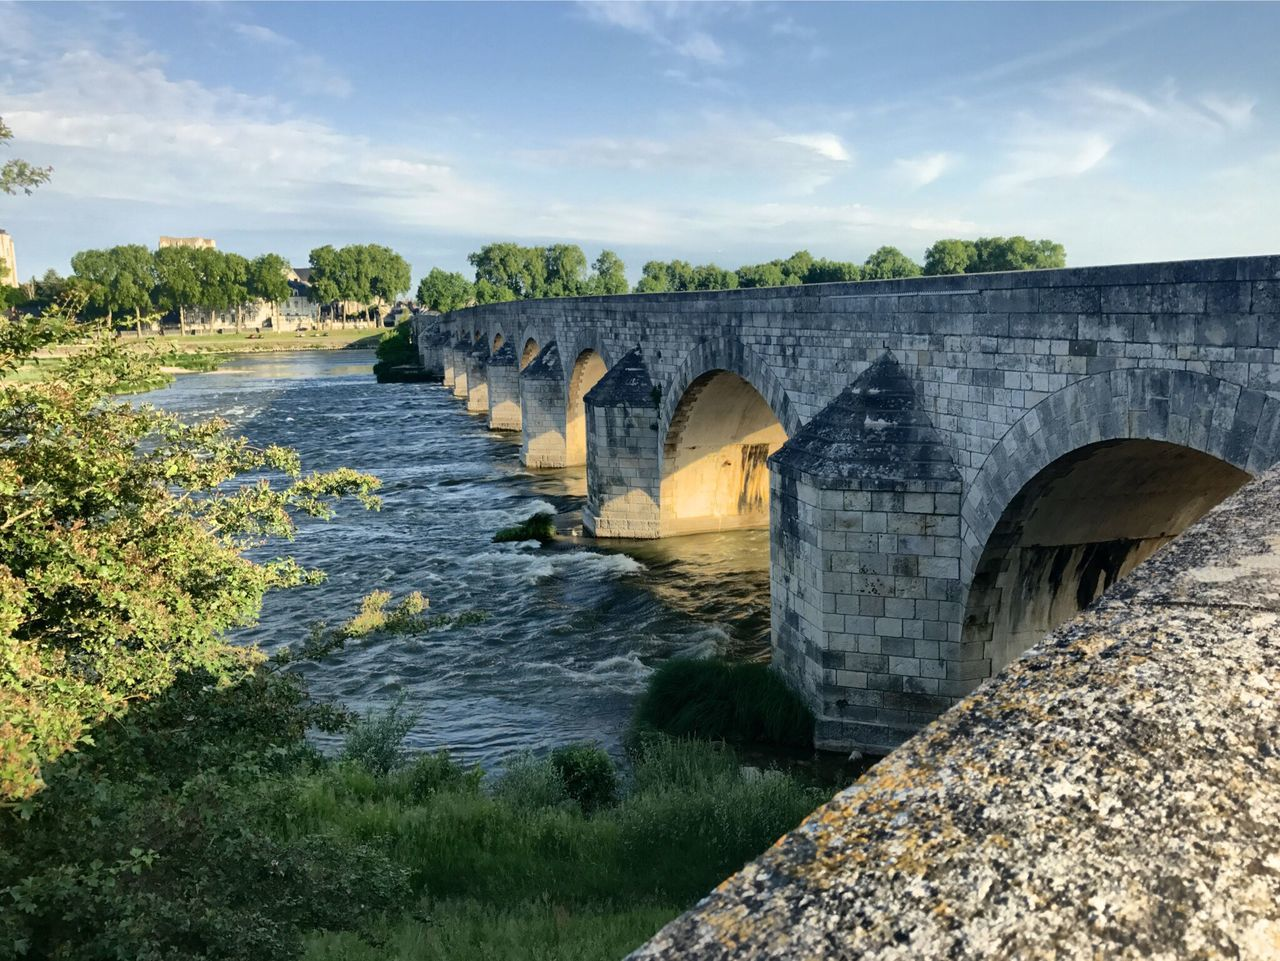 bridge - man made structure, connection, arch bridge, arch, architecture, viaduct, built structure, engineering, river, sky, outdoors, day, cloud - sky, water, transportation, no people, nature